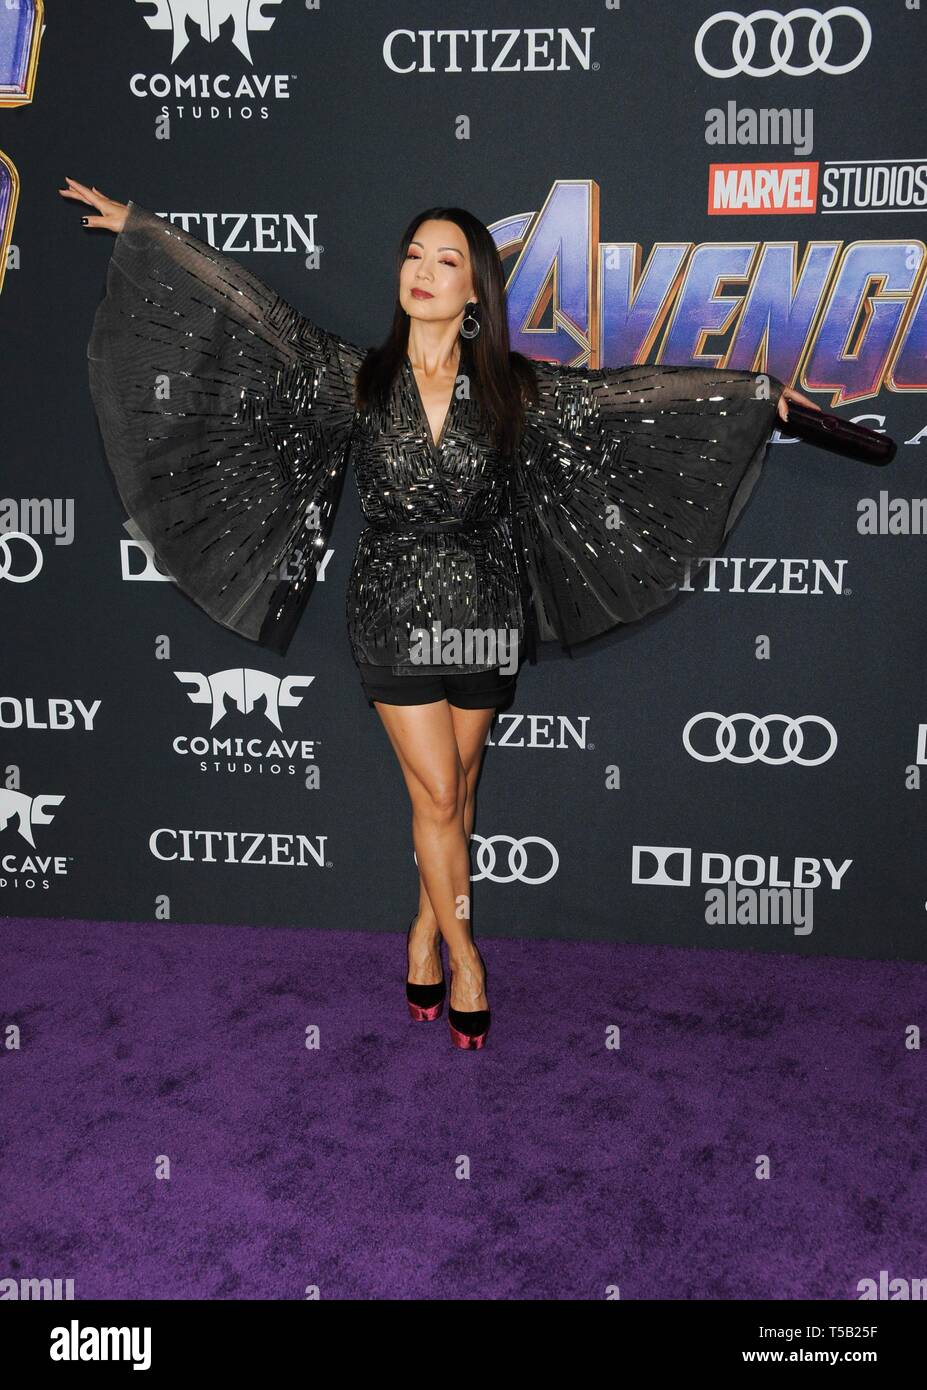 Los Angeles Ca Usa 22nd Apr 2019 Ming Na Wen At Arrivals For Avengers Endgame Premiere